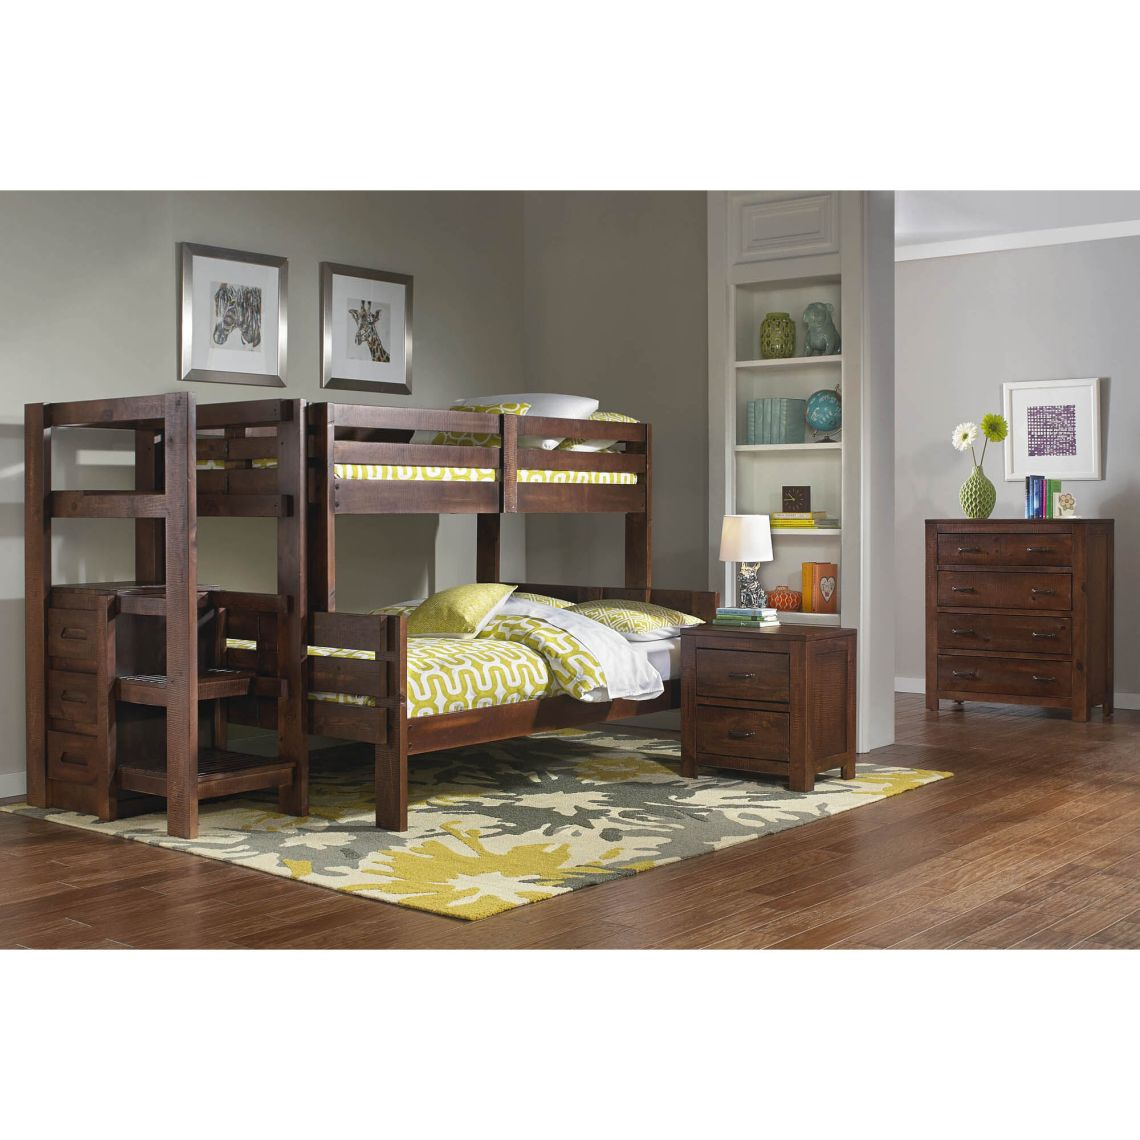 Image Result For Online Rent To Own Furniture Stores